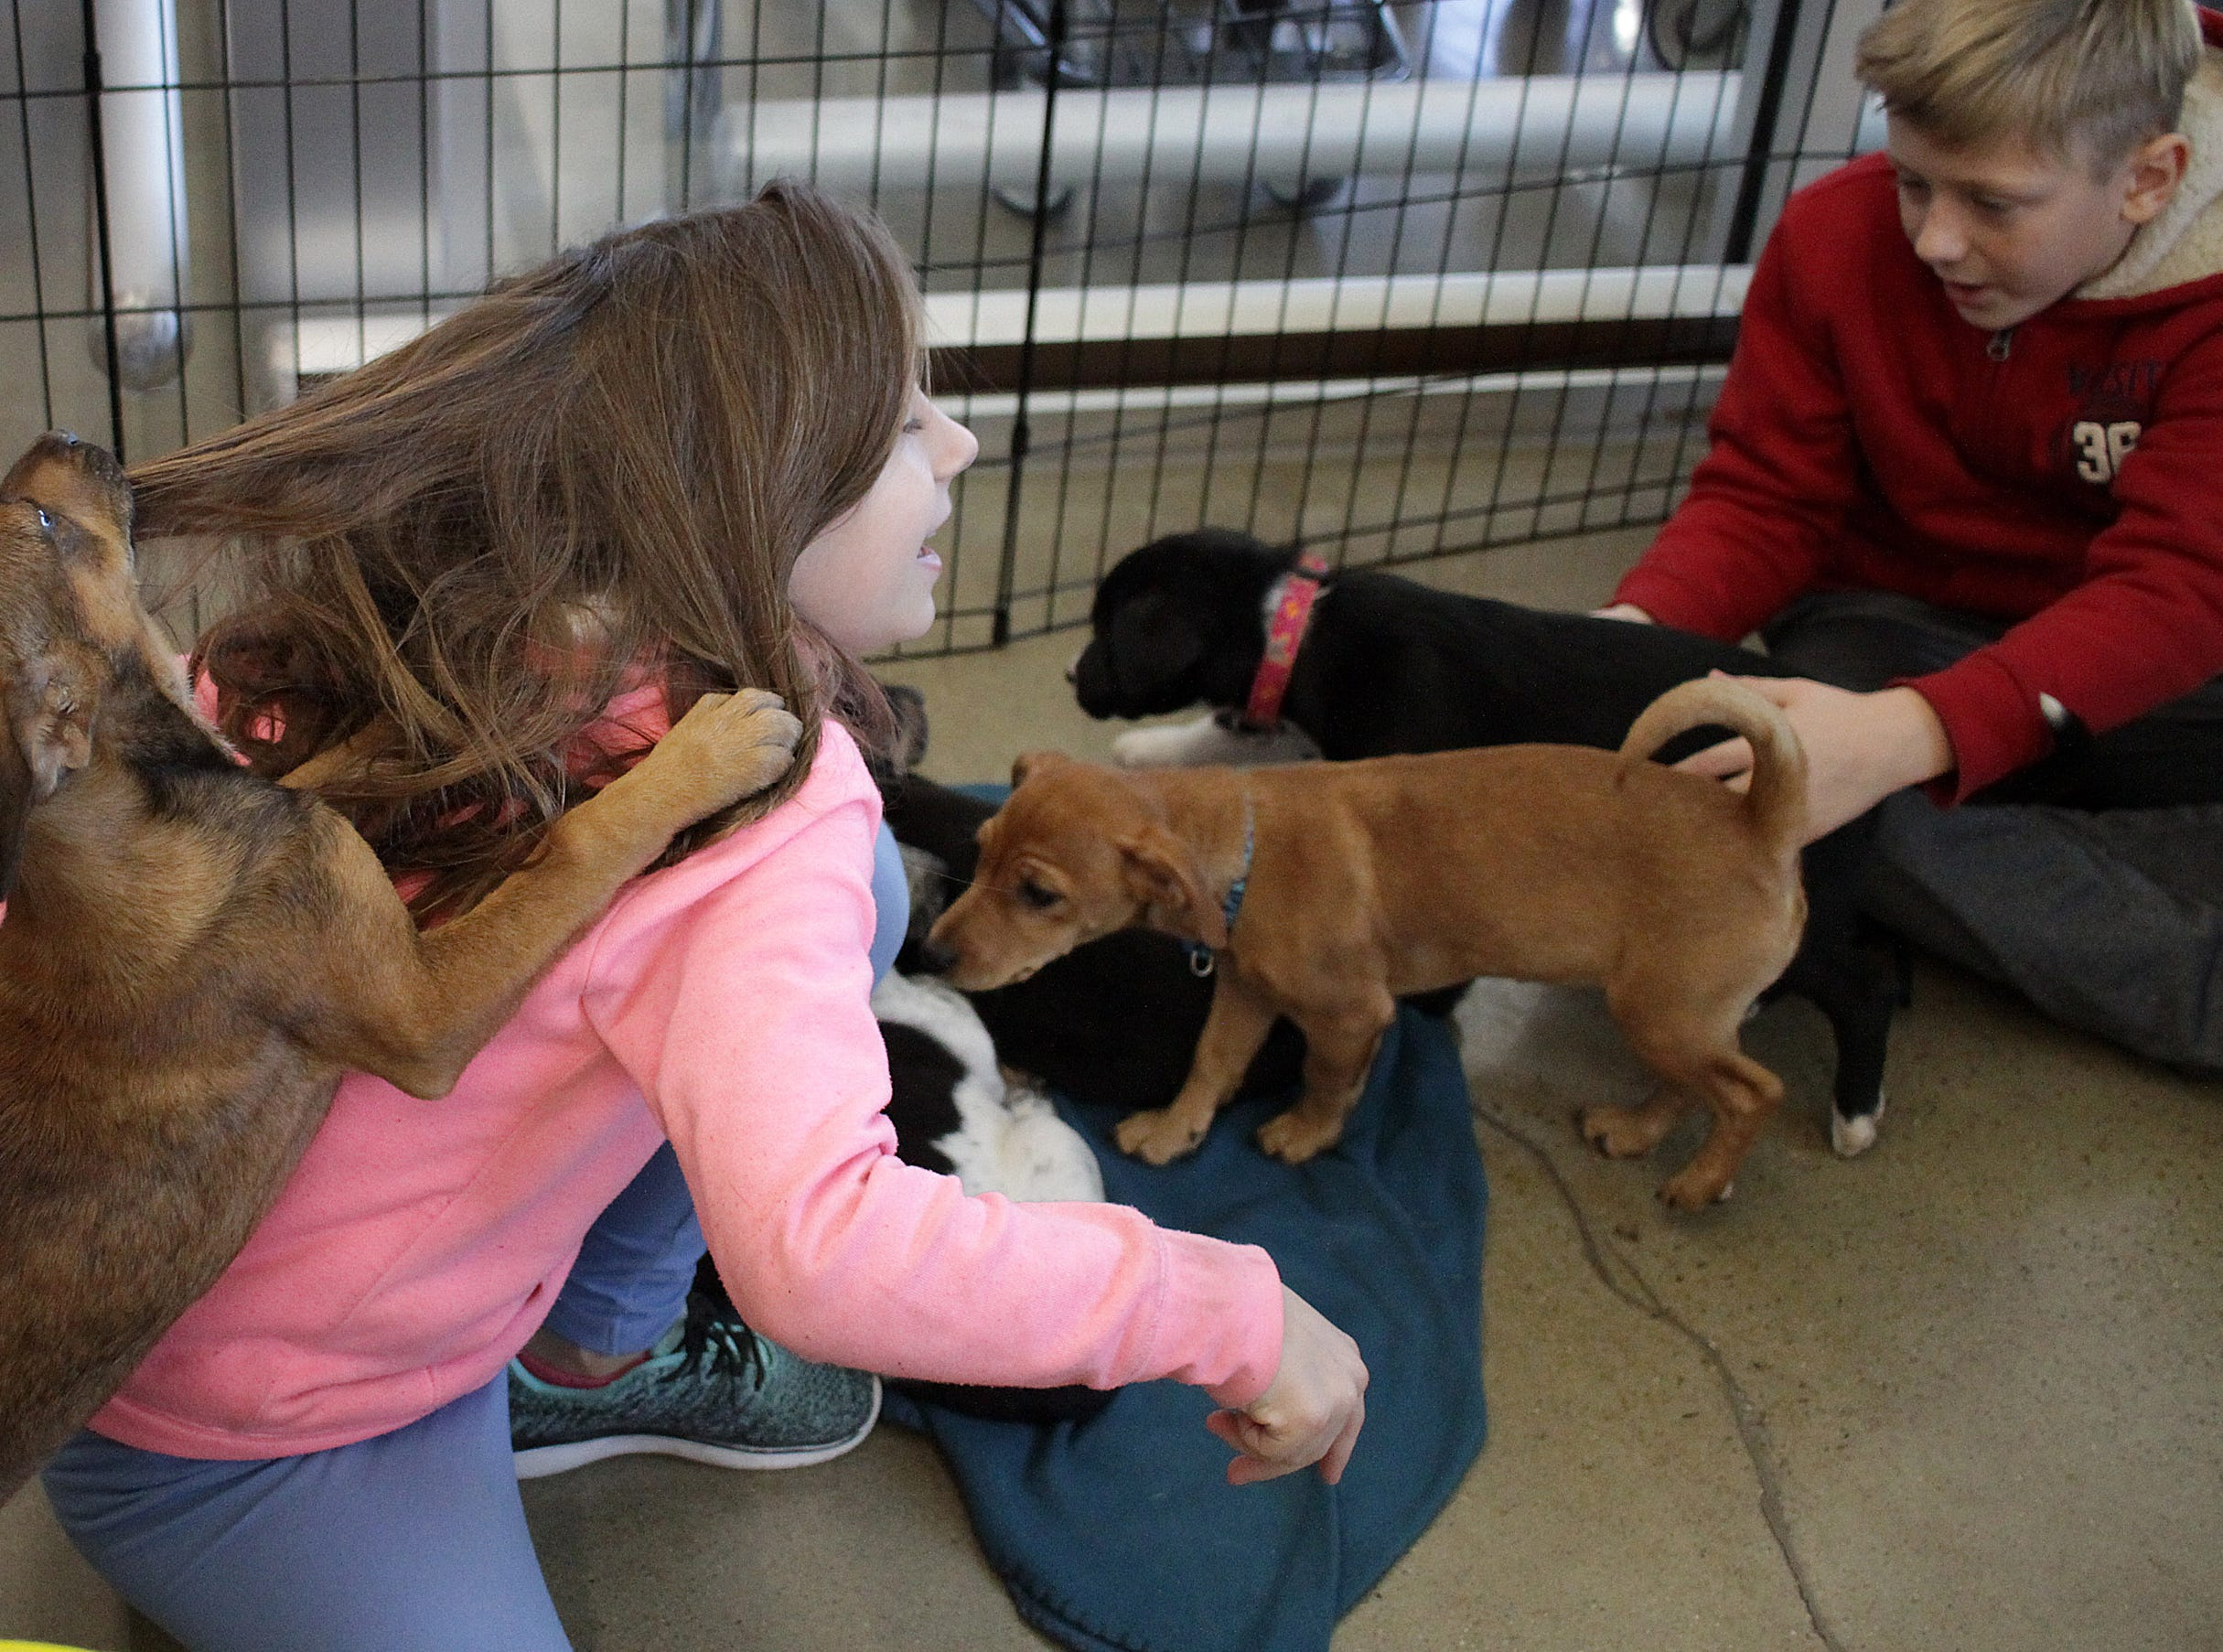 A puppy pulls on the hair of Olivia Humphrey (7) at Jojo's Doghouse adoption event at Pet Supplies Plus in Hendersonville, TN on Saturday, January 5, 2019.